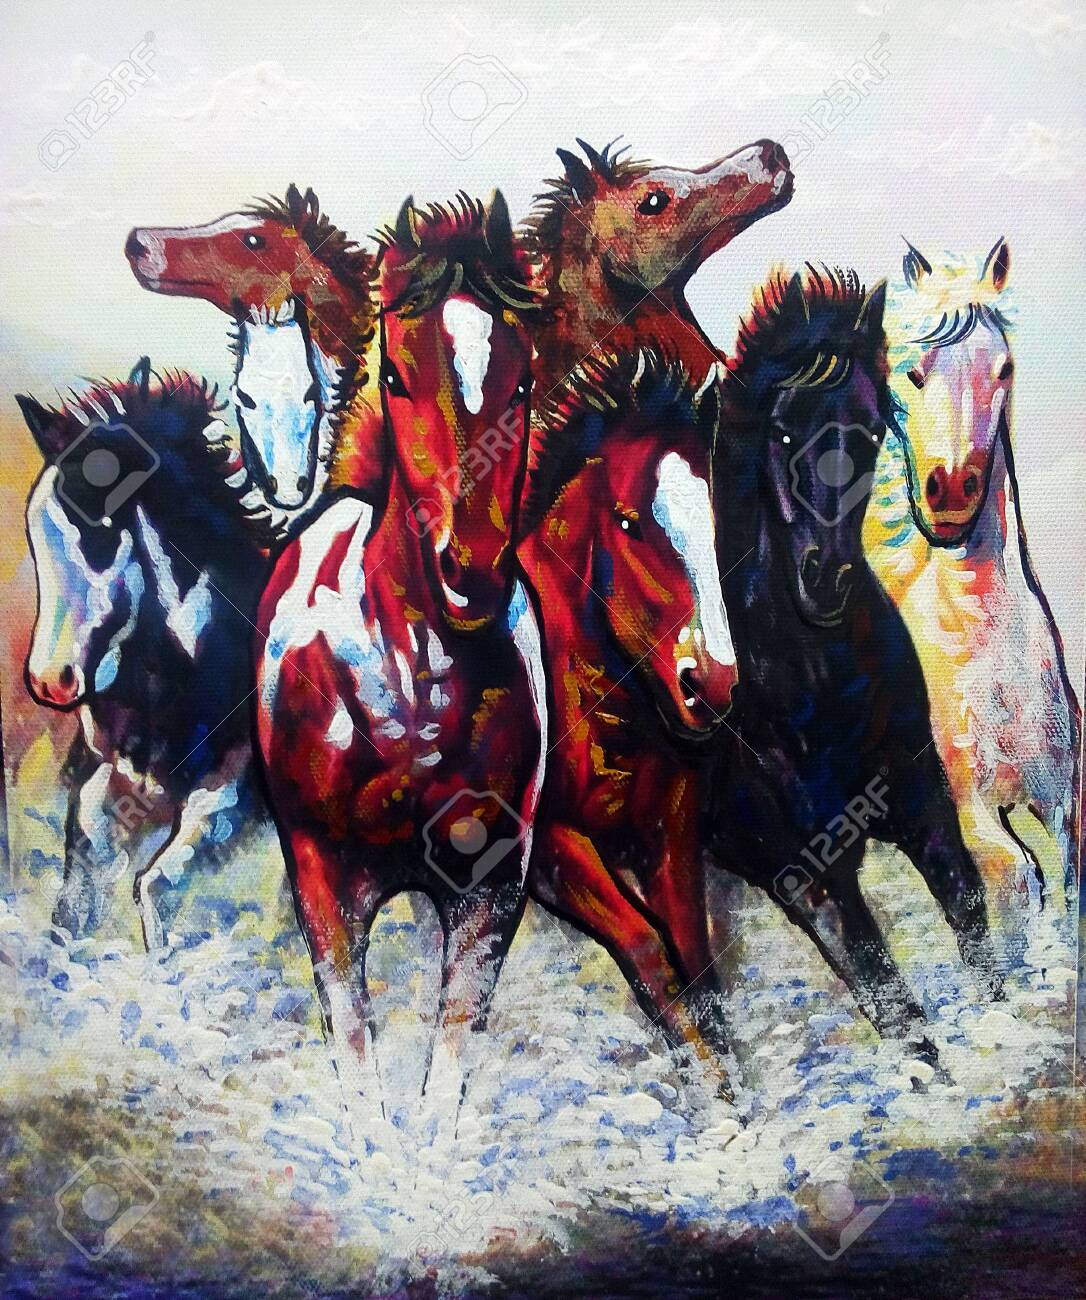 Art Painting Fine Art Oil Color Running Horse Lucky From Thailand Stock Photo Picture And Royalty Free Image Image 152088804